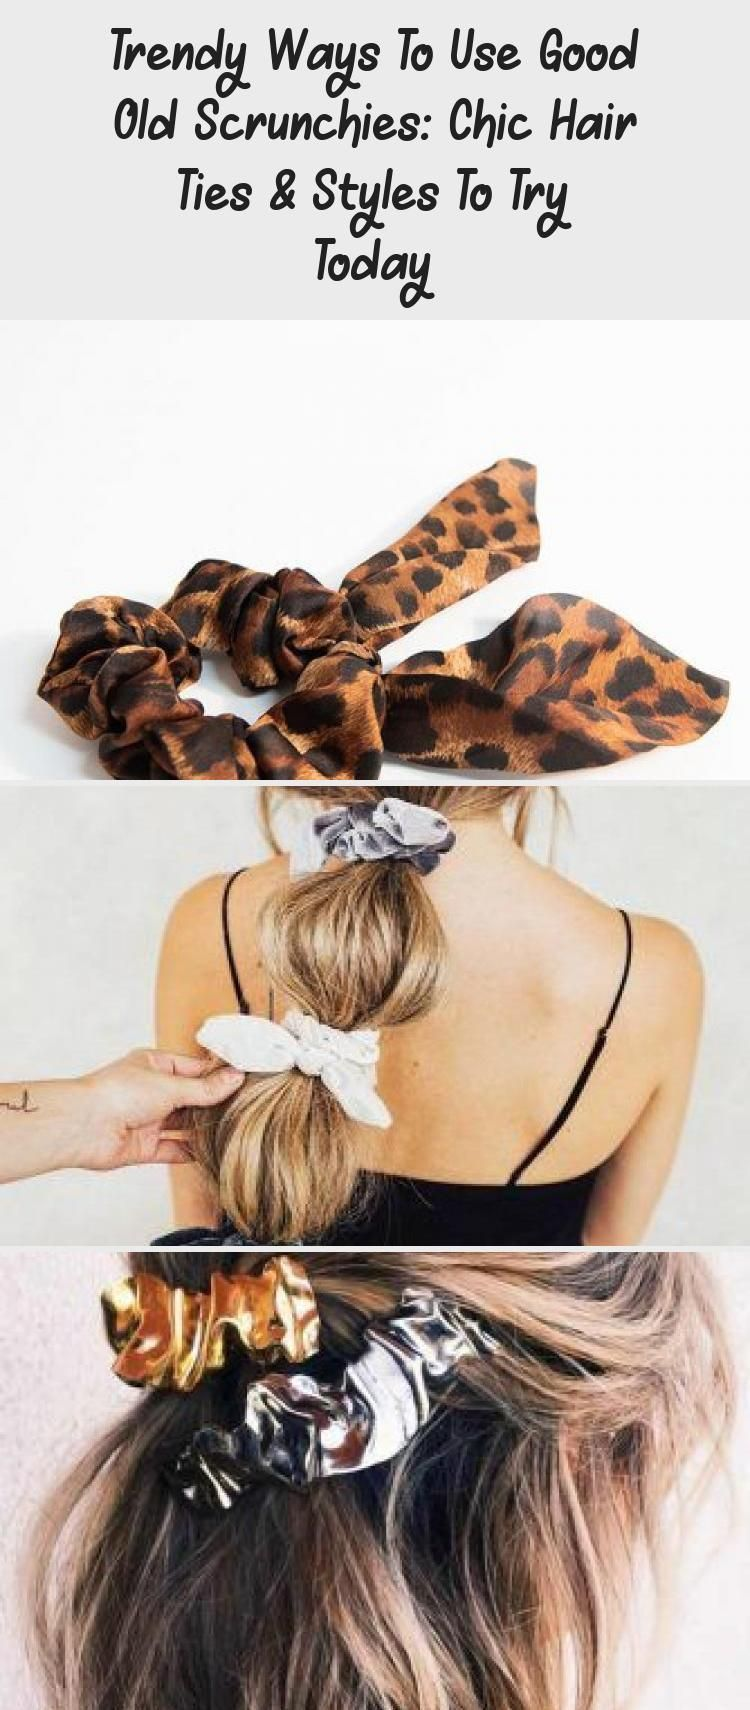 Trendy Ways To Use Good Old Scrunchies Chic Hair Ties Styles To Try Today In 2020 Hair Styles Boho Hair Tutorial Hair Videos Tutorials